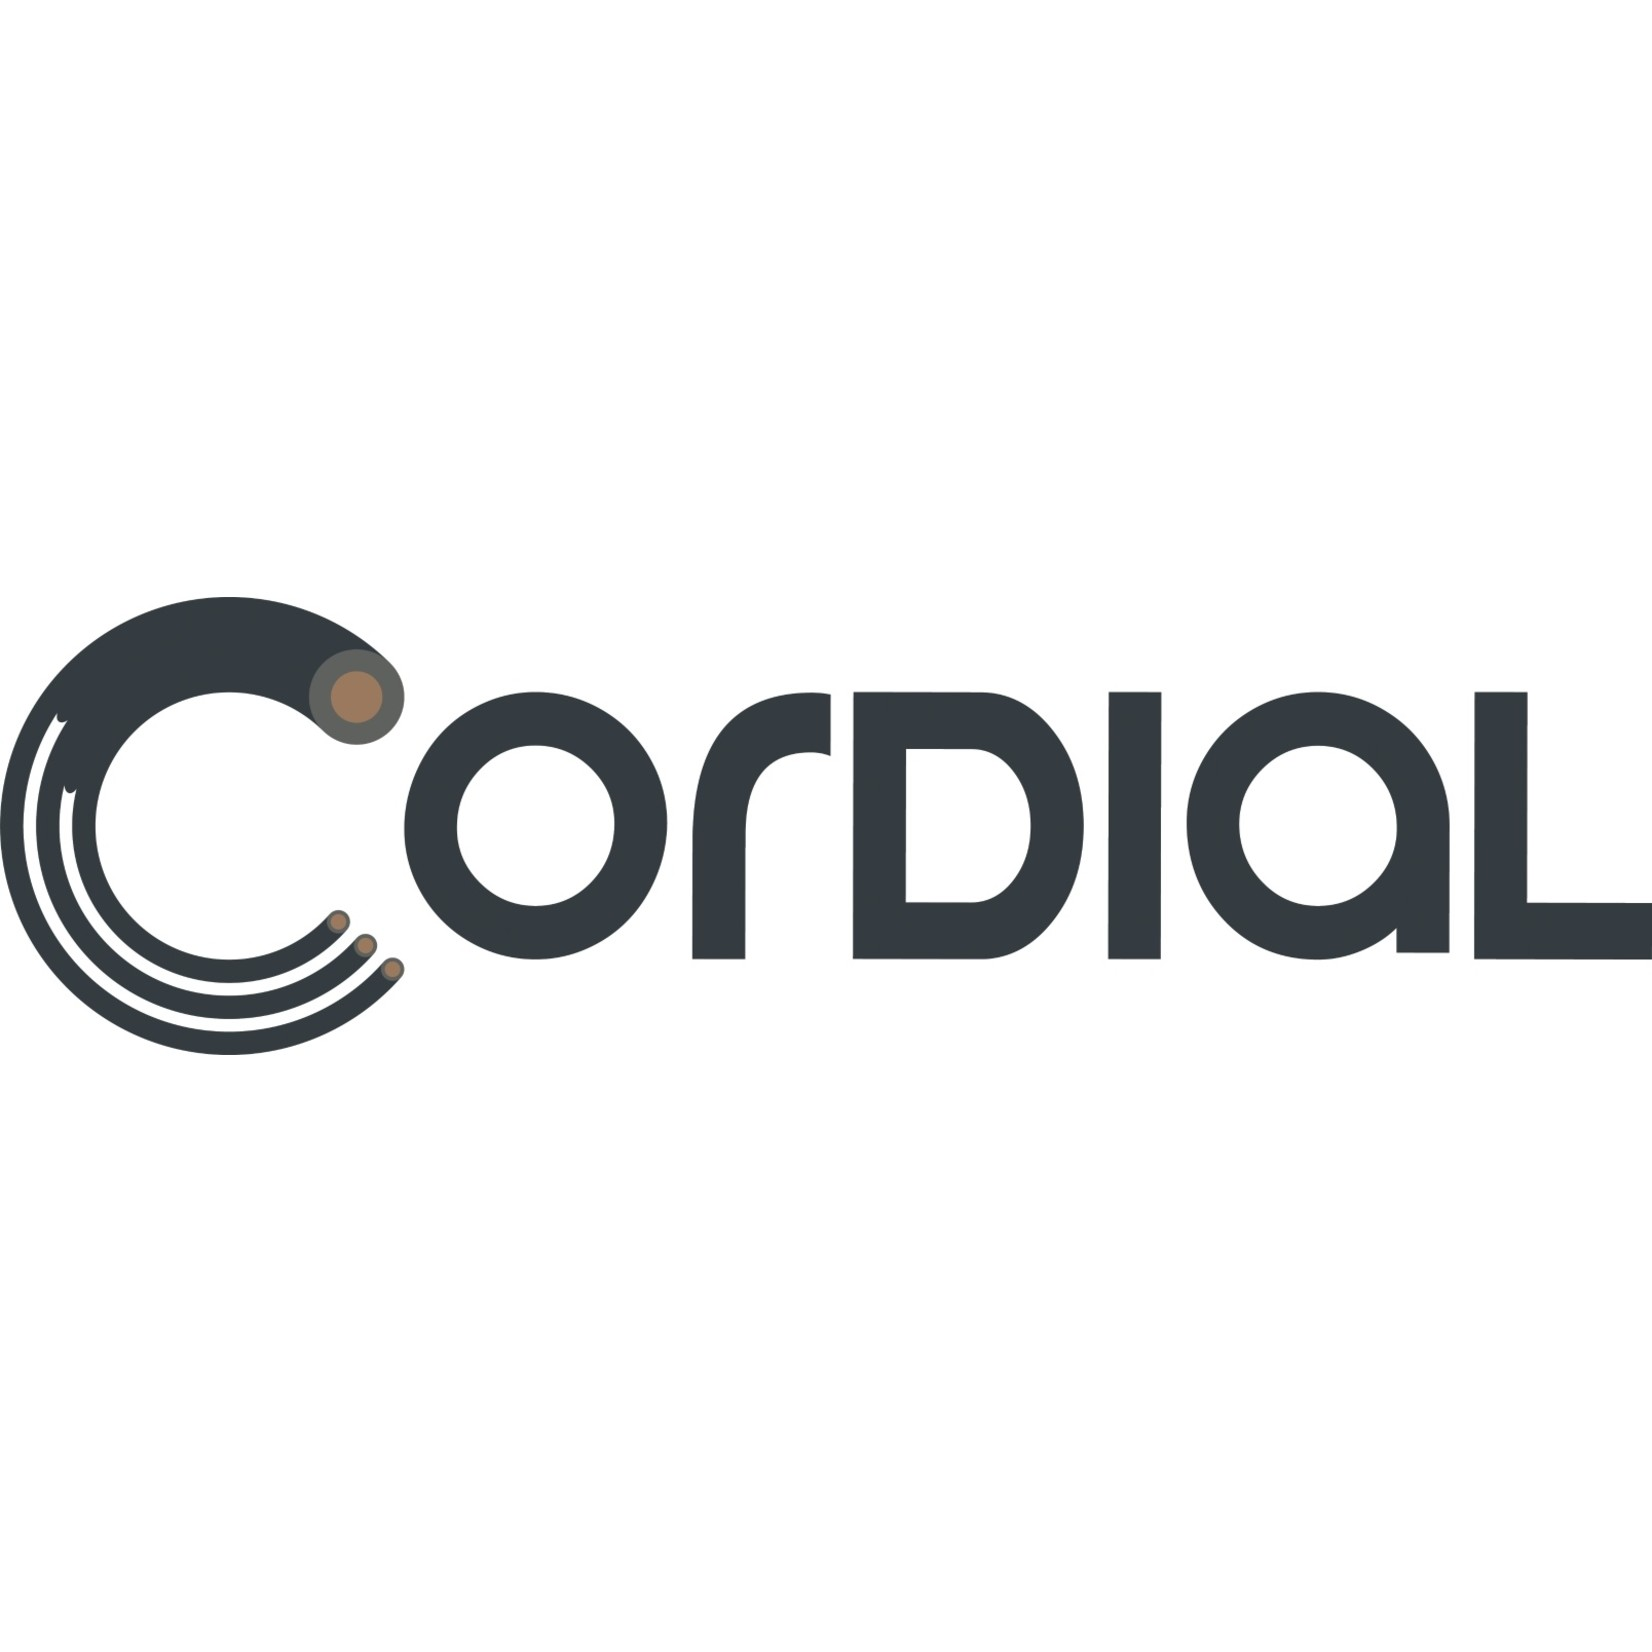 Cordial Cables Cordial Cables Premium High-Copper Microphone Cable with Road Wrap, Peak Series - XLR to XLR Connectors, Enhanced Road Toughness, 8-Foot Cable